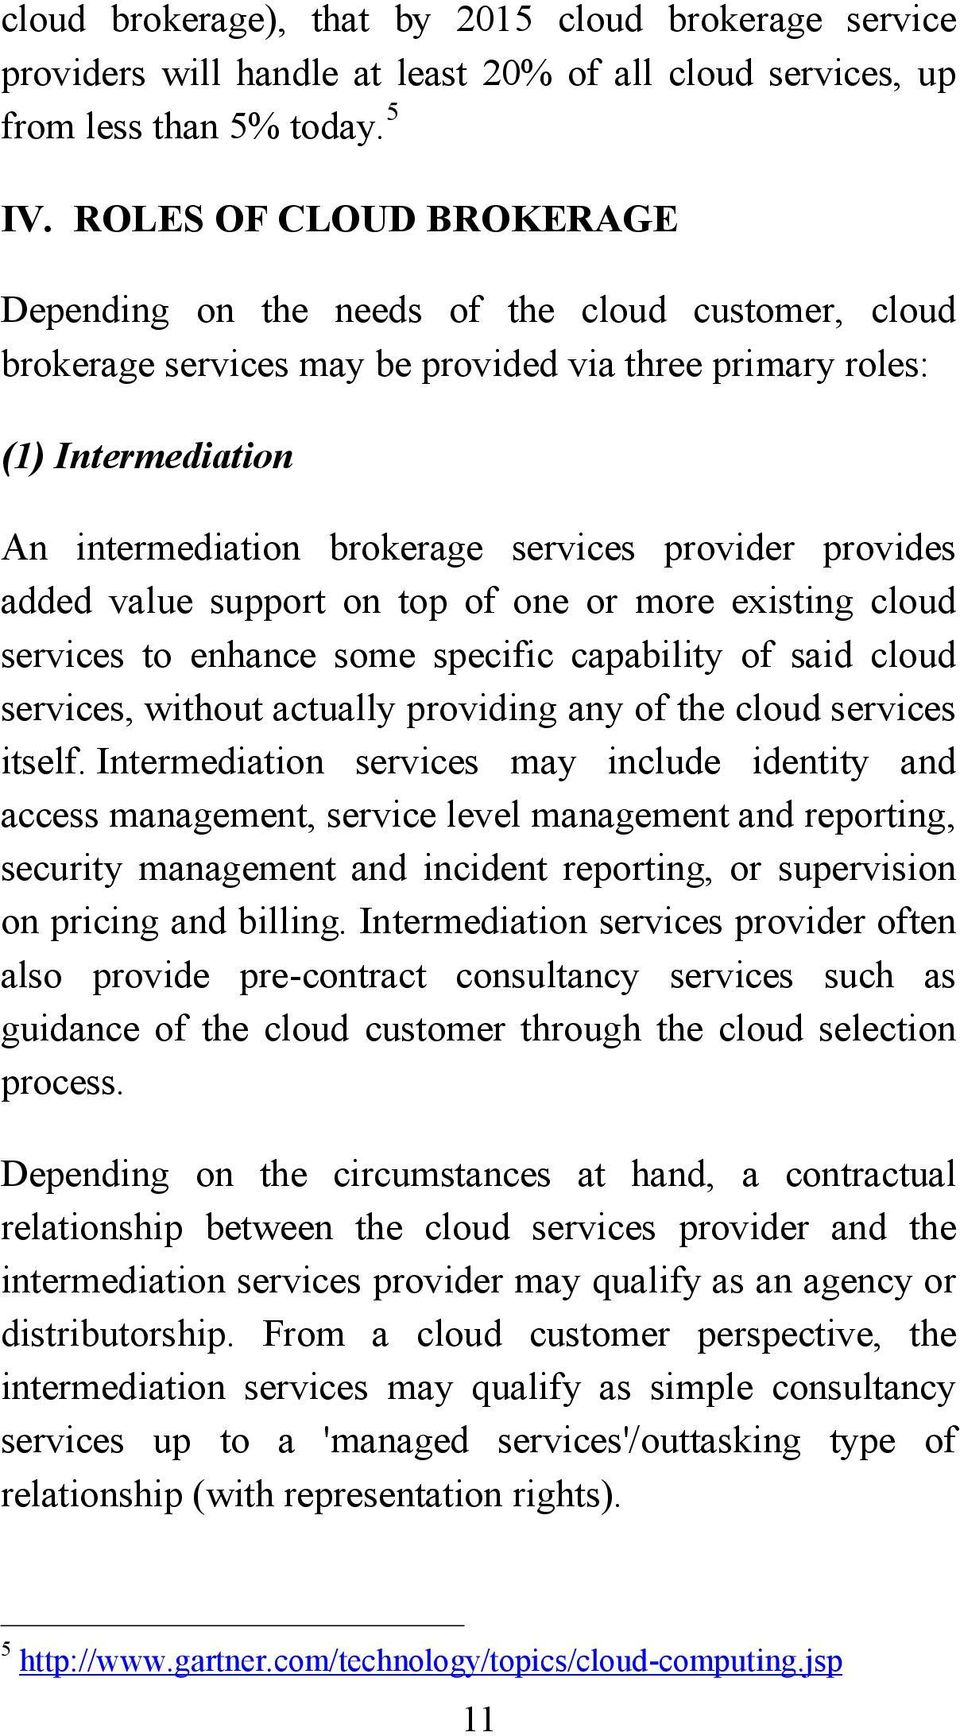 provider provides added value support on top of one or more existing cloud services to enhance some specific capability of said cloud services, without actually providing any of the cloud services